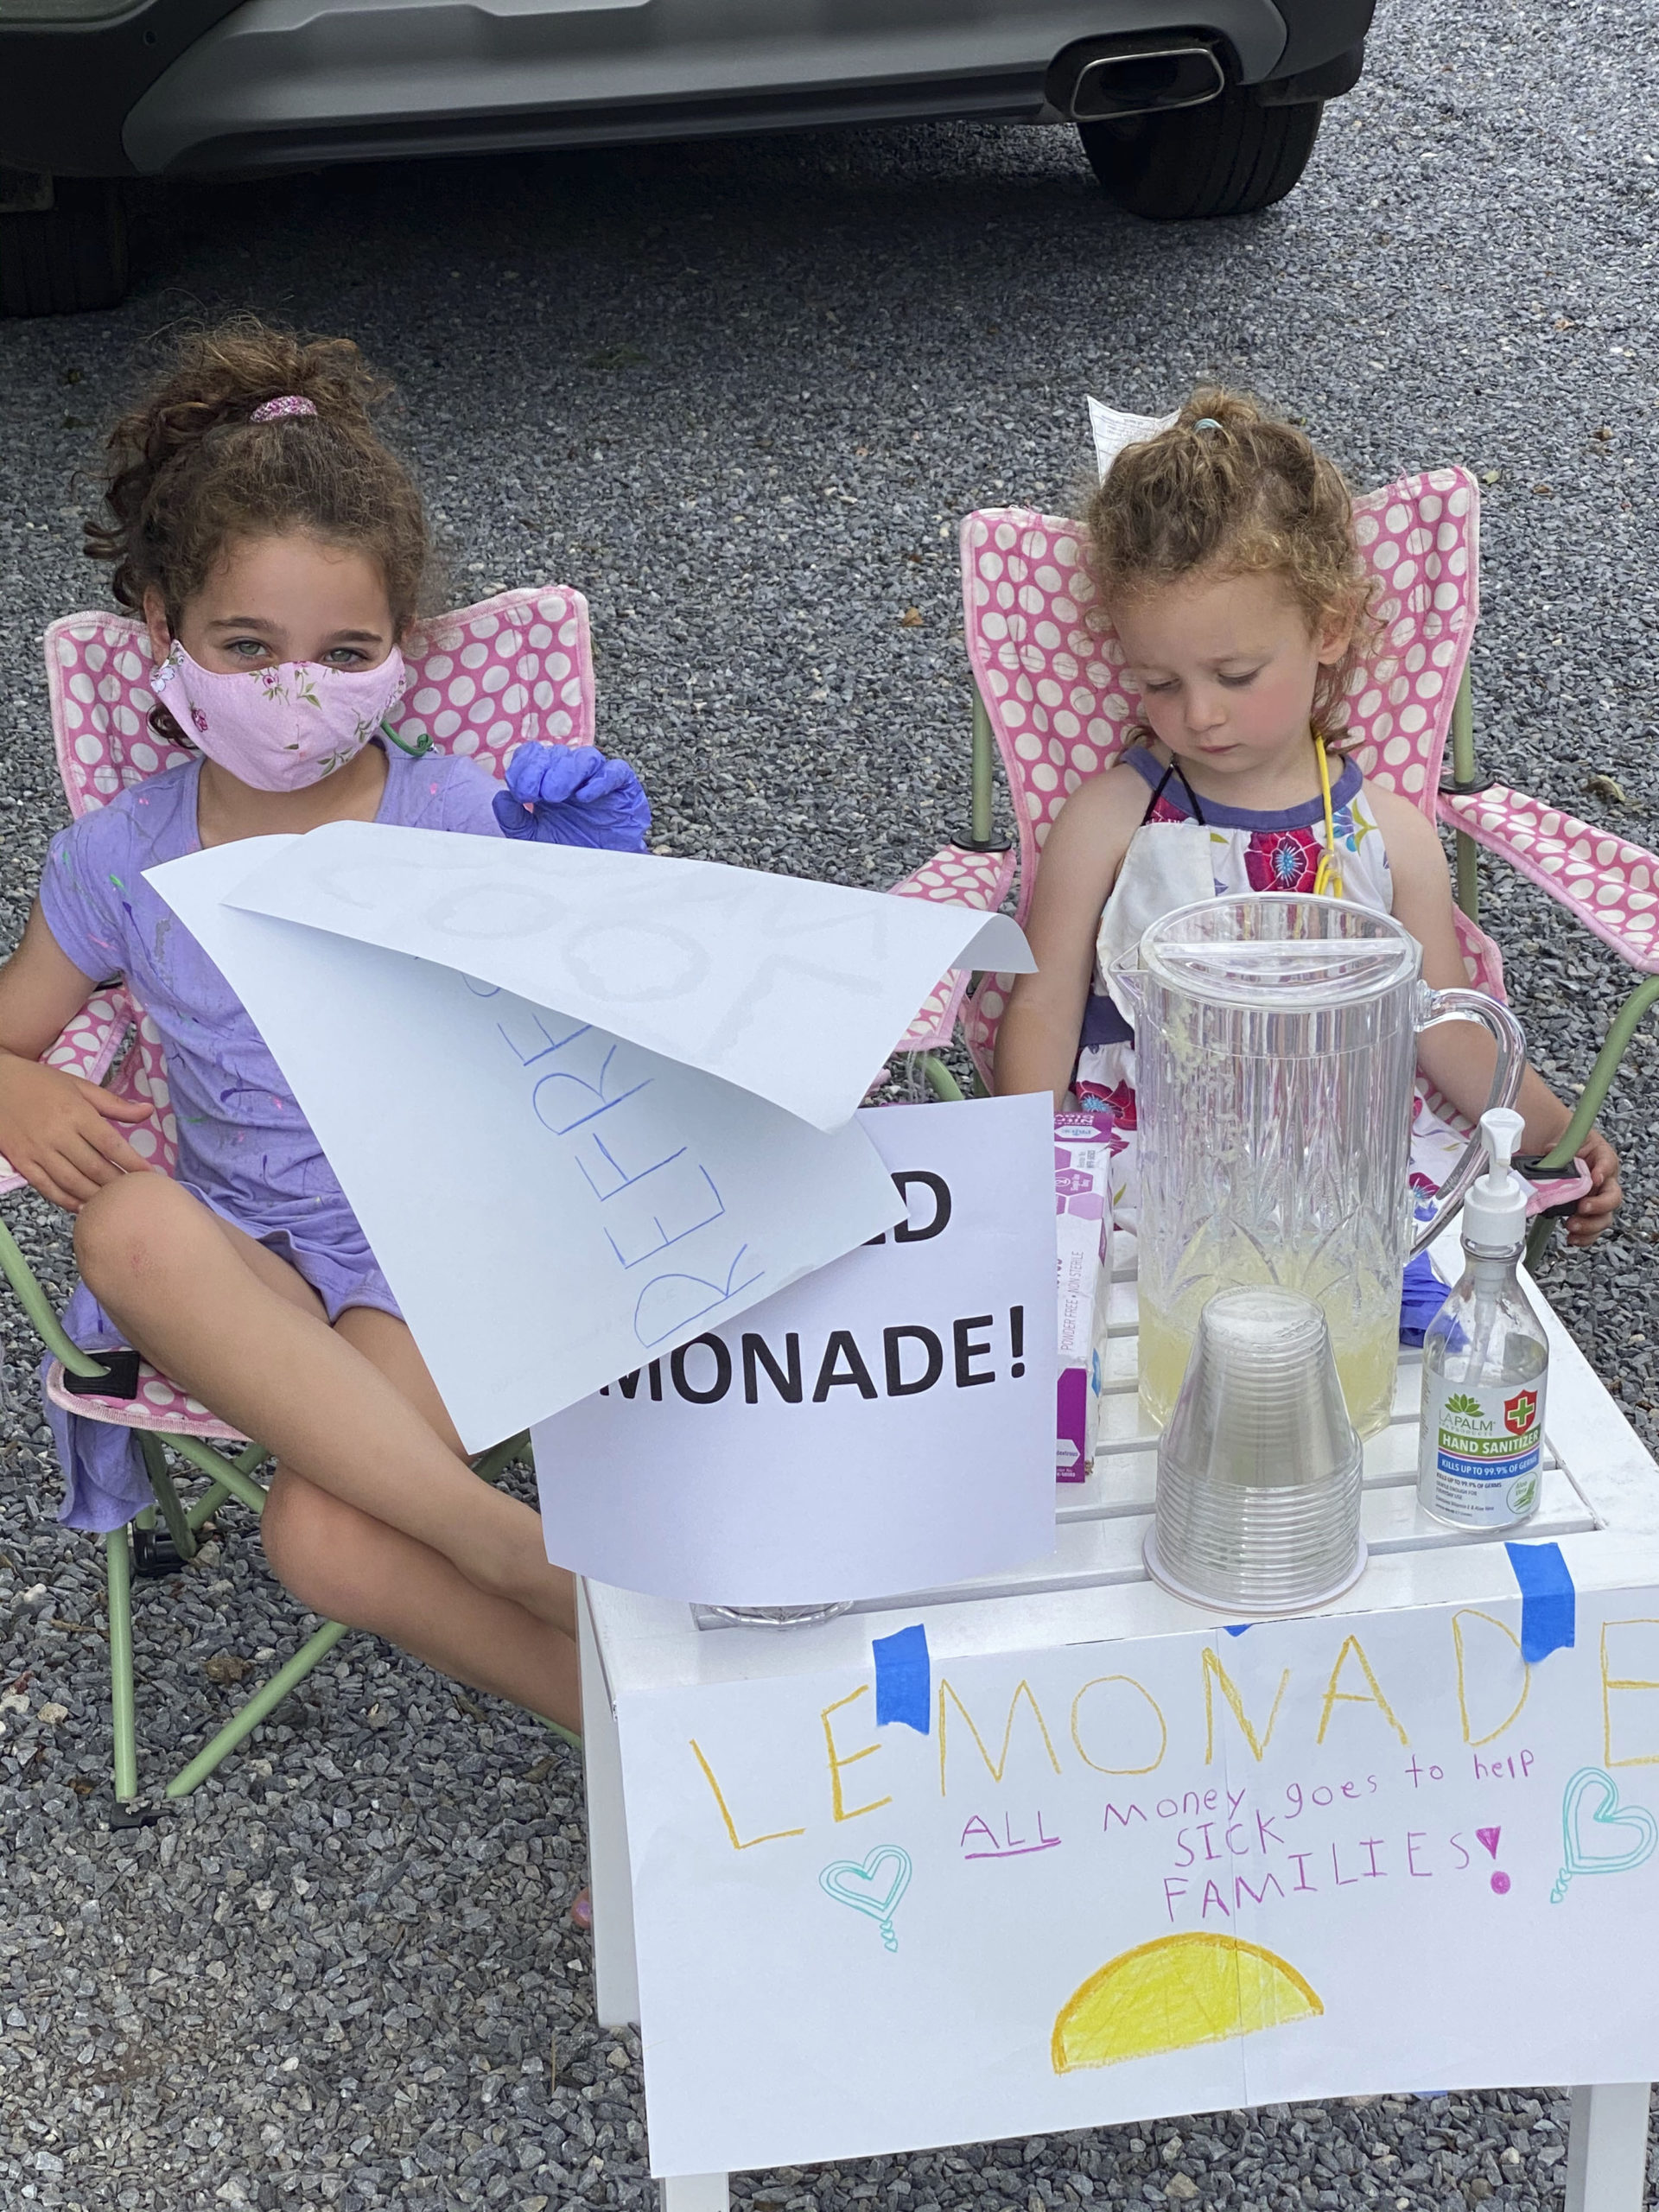 Dylan Ehrlich, 6, and Logan Ehrlich, 2, residing in East Hampton Village for the summer ran a lemonade stand on Friday and Saturday and raised $94 which they are donating to the local hospital.  COURTESY STEPHEN FRISHBERG